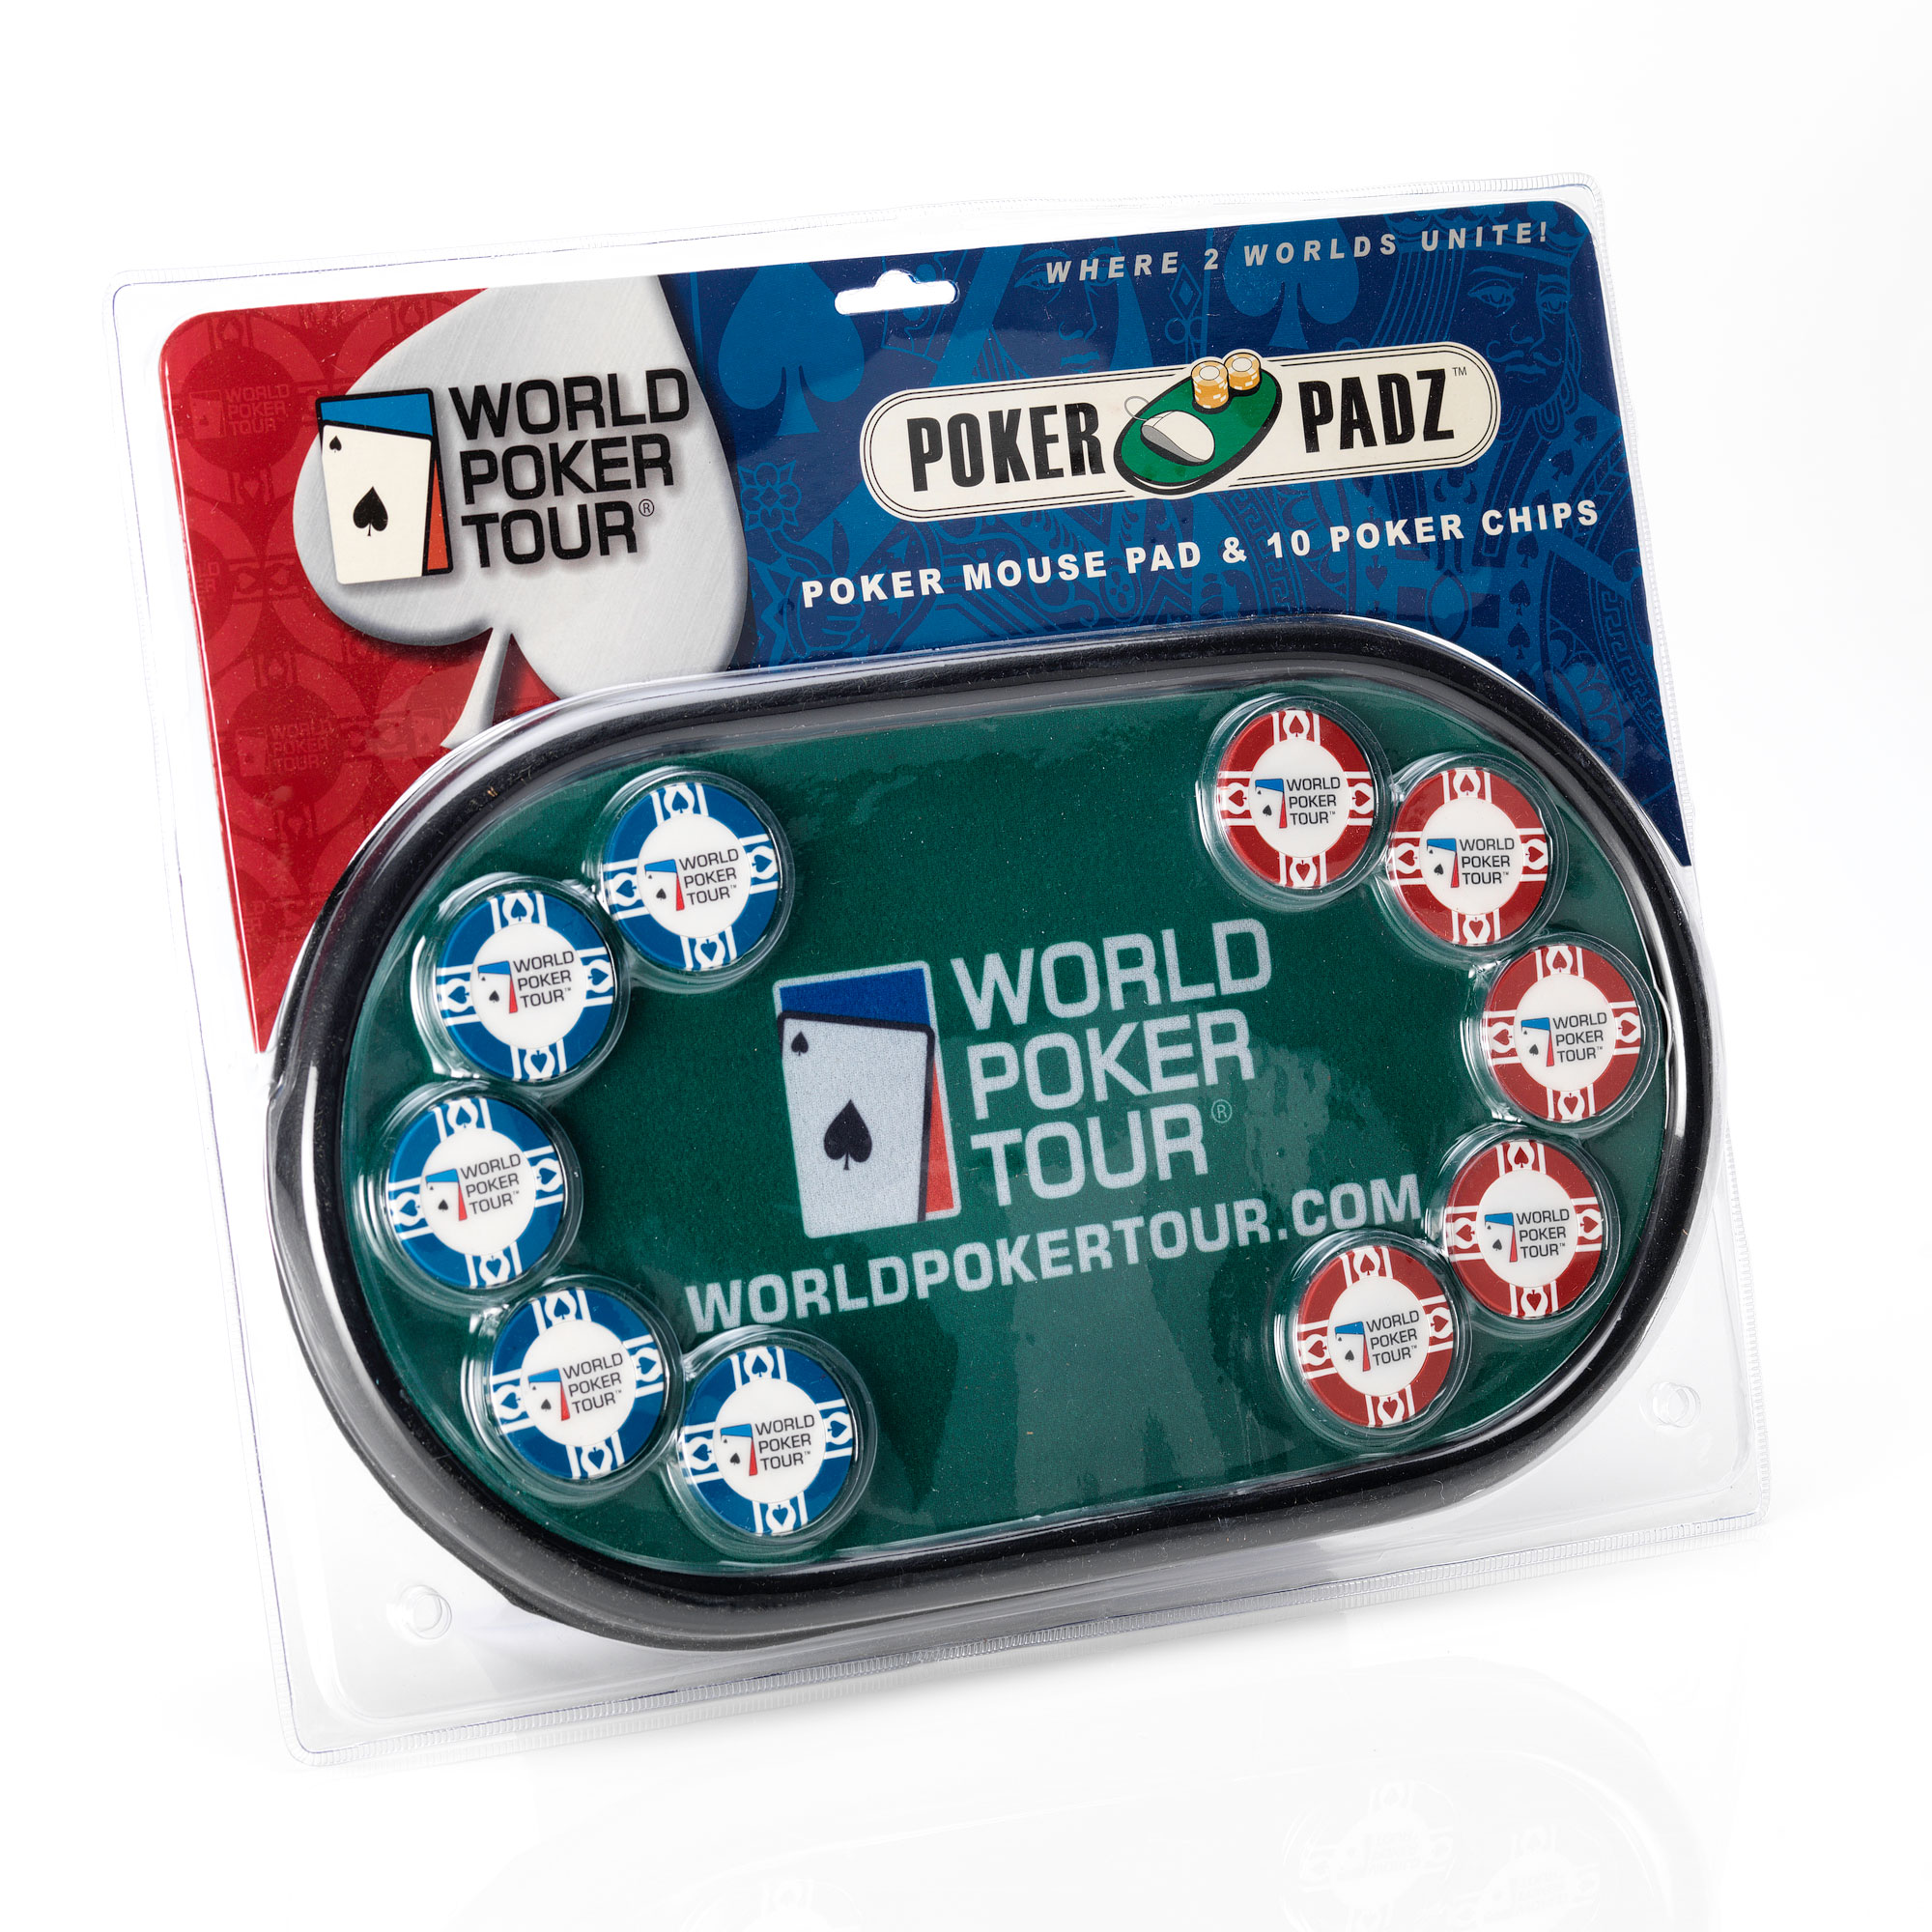 World poker tour chips free online casino slots games no download no registration